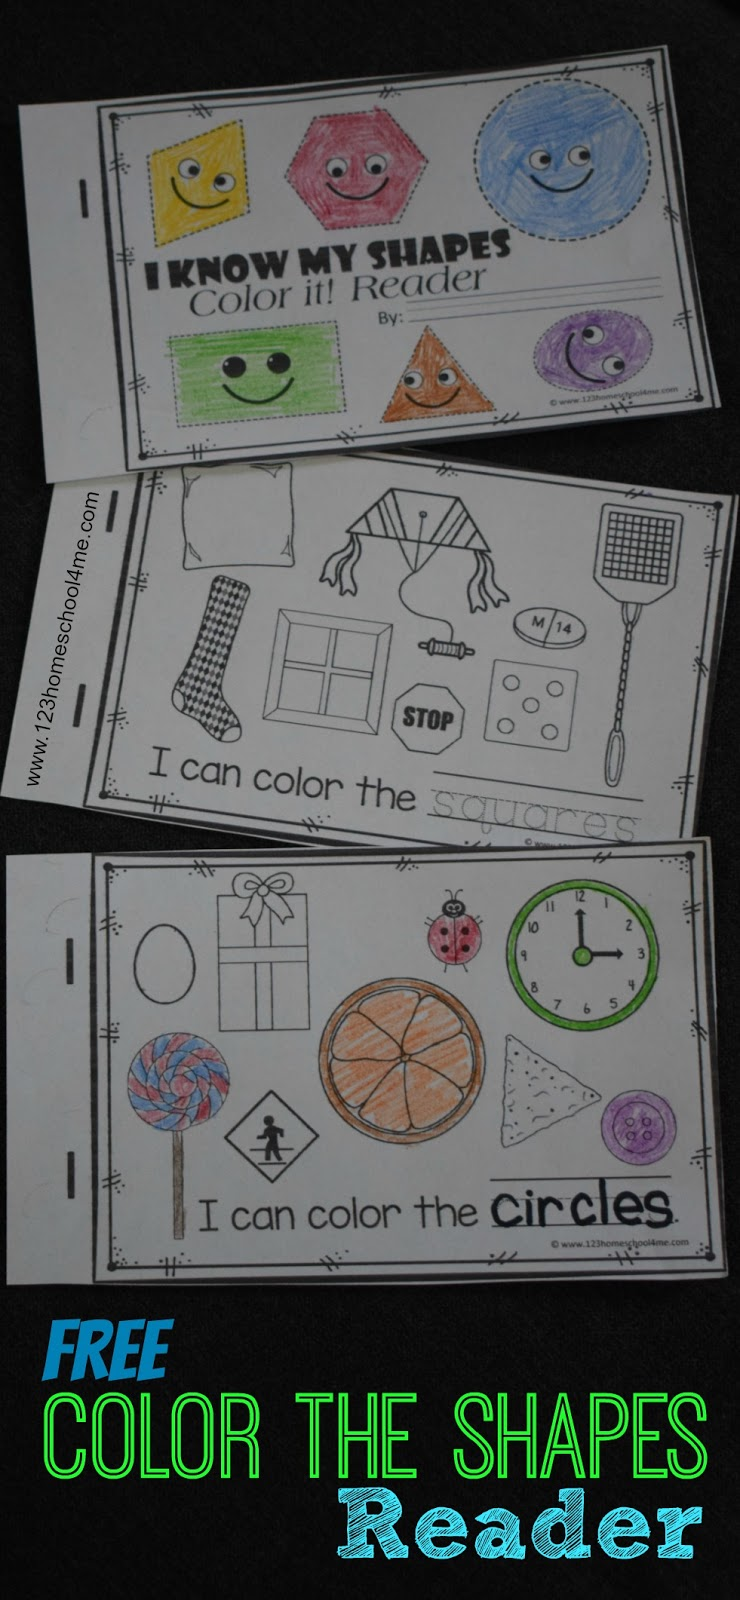 Kindergarten Worksheets and Games  FREE Names of Shapes Emergent Reader FREE Color the Shapes Reader   Includes shape worksheets for 9 shapes  Kids  read a